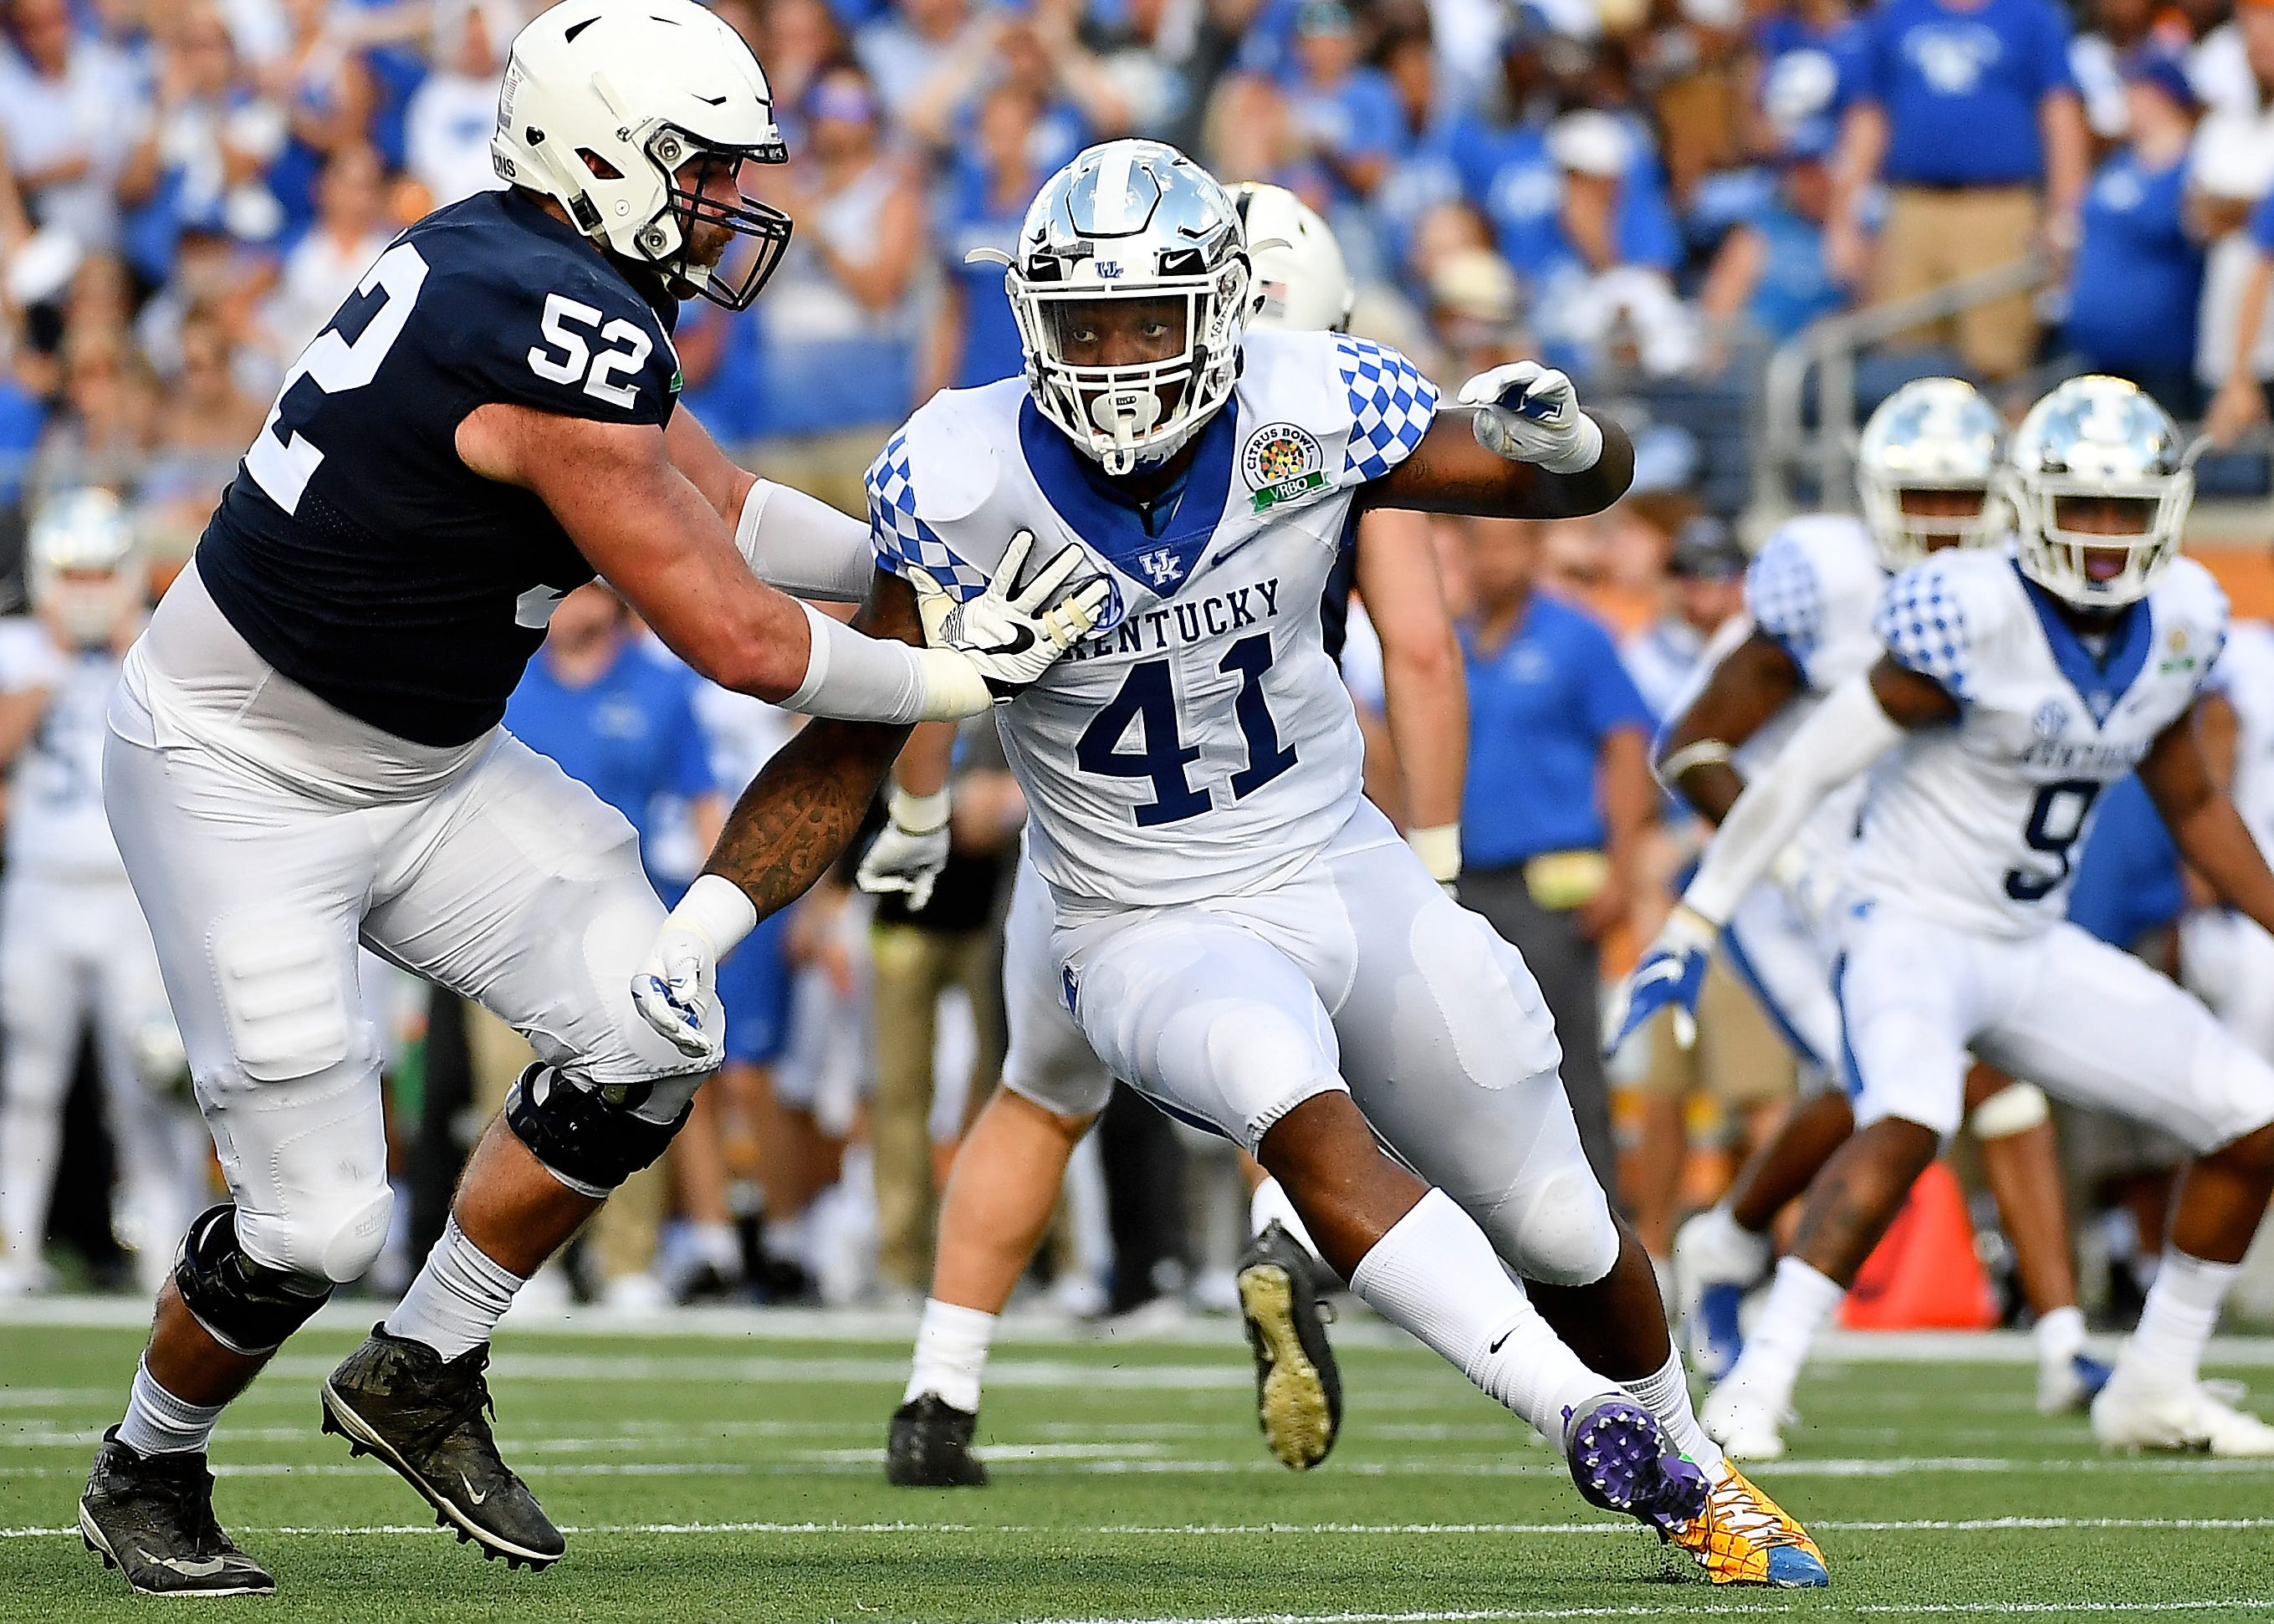 Kentucky linebacker Josh Allen pass rushes against Penn State offensive lineman Ryan Bates during the 2019 Citrus Bowl.